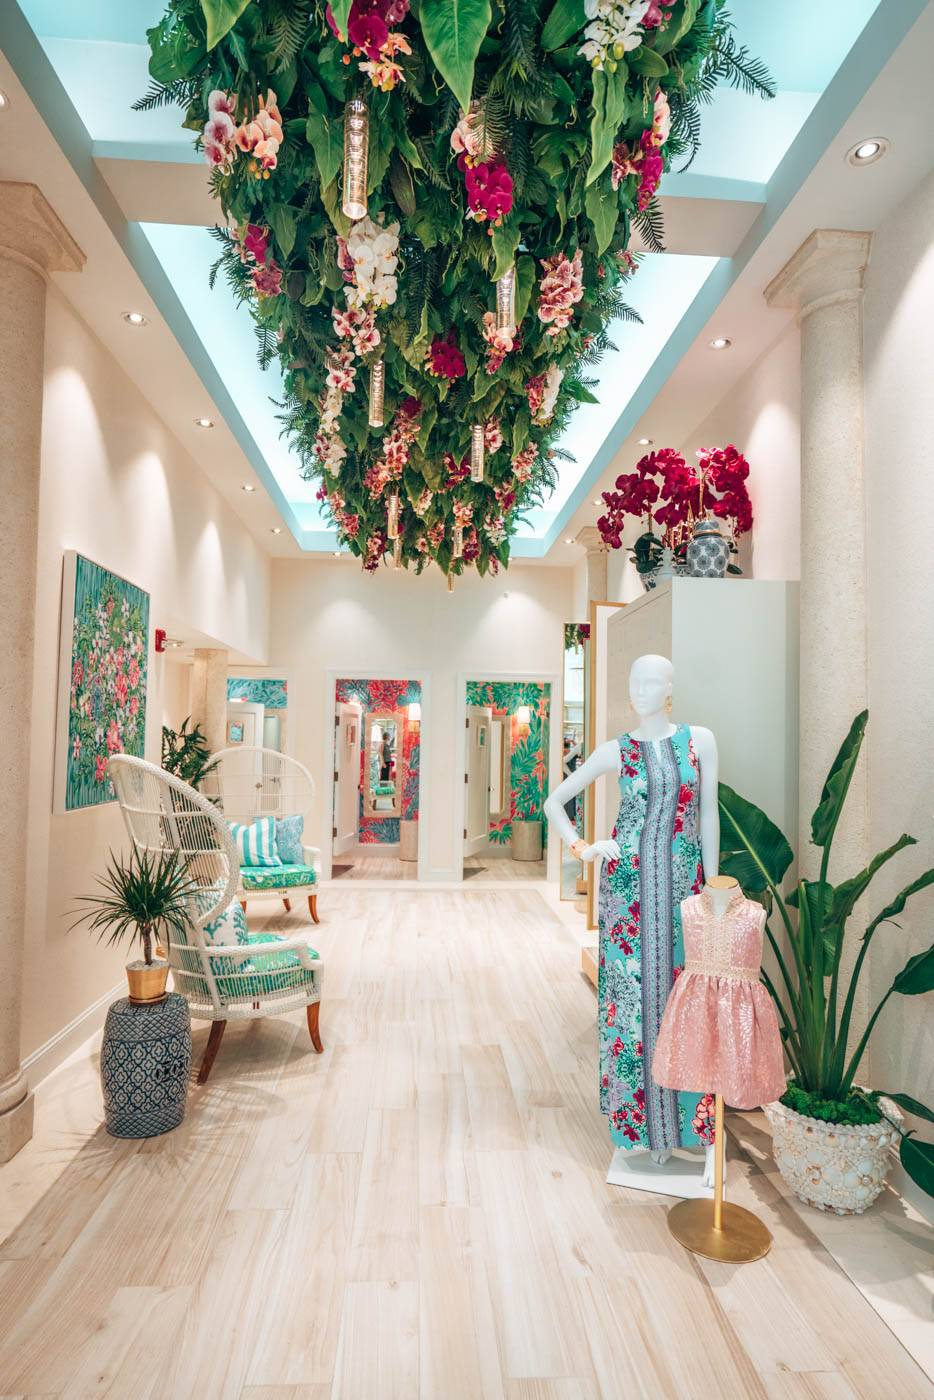 This Palm Beach Travel guide covers everything from where to stay, what to do, and where to eat- including a visit to the Lilly Pulitzer store